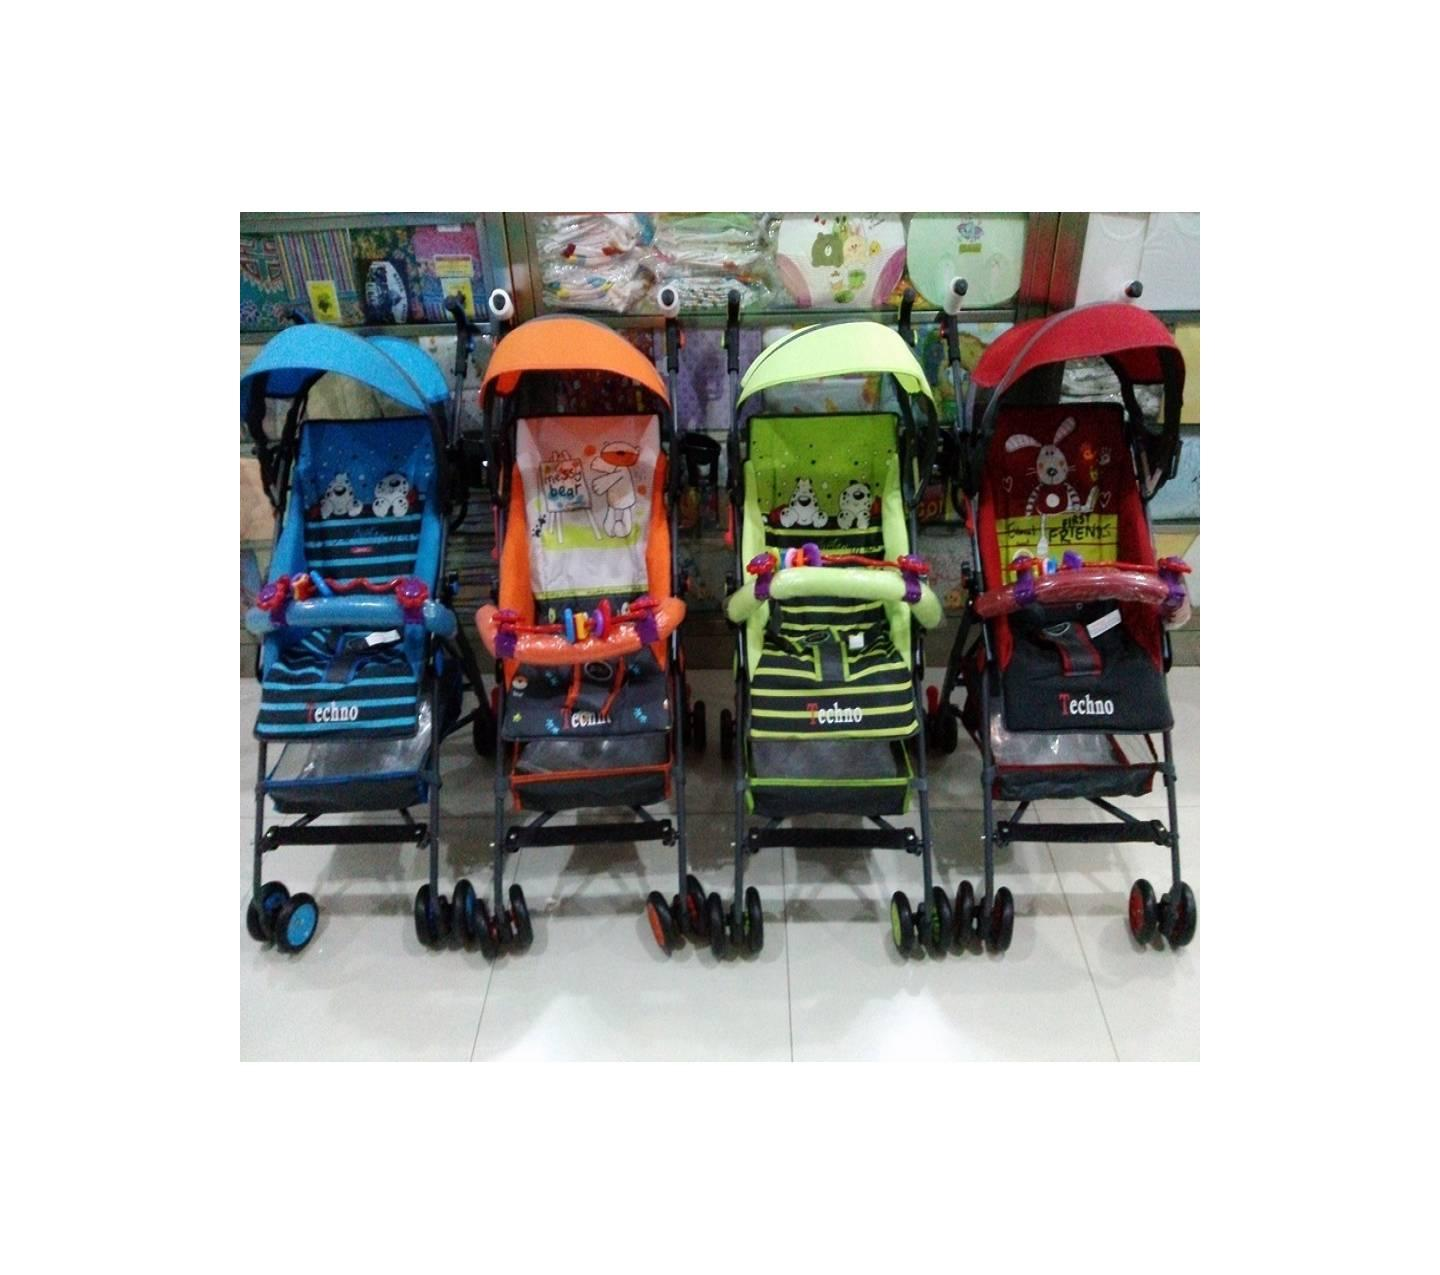 Stroller Pliko Techno 107 Buy Sell Cheapest Stoller Buggy Best Quality Product Deals Kereta Dorong Bayi Baby Asli